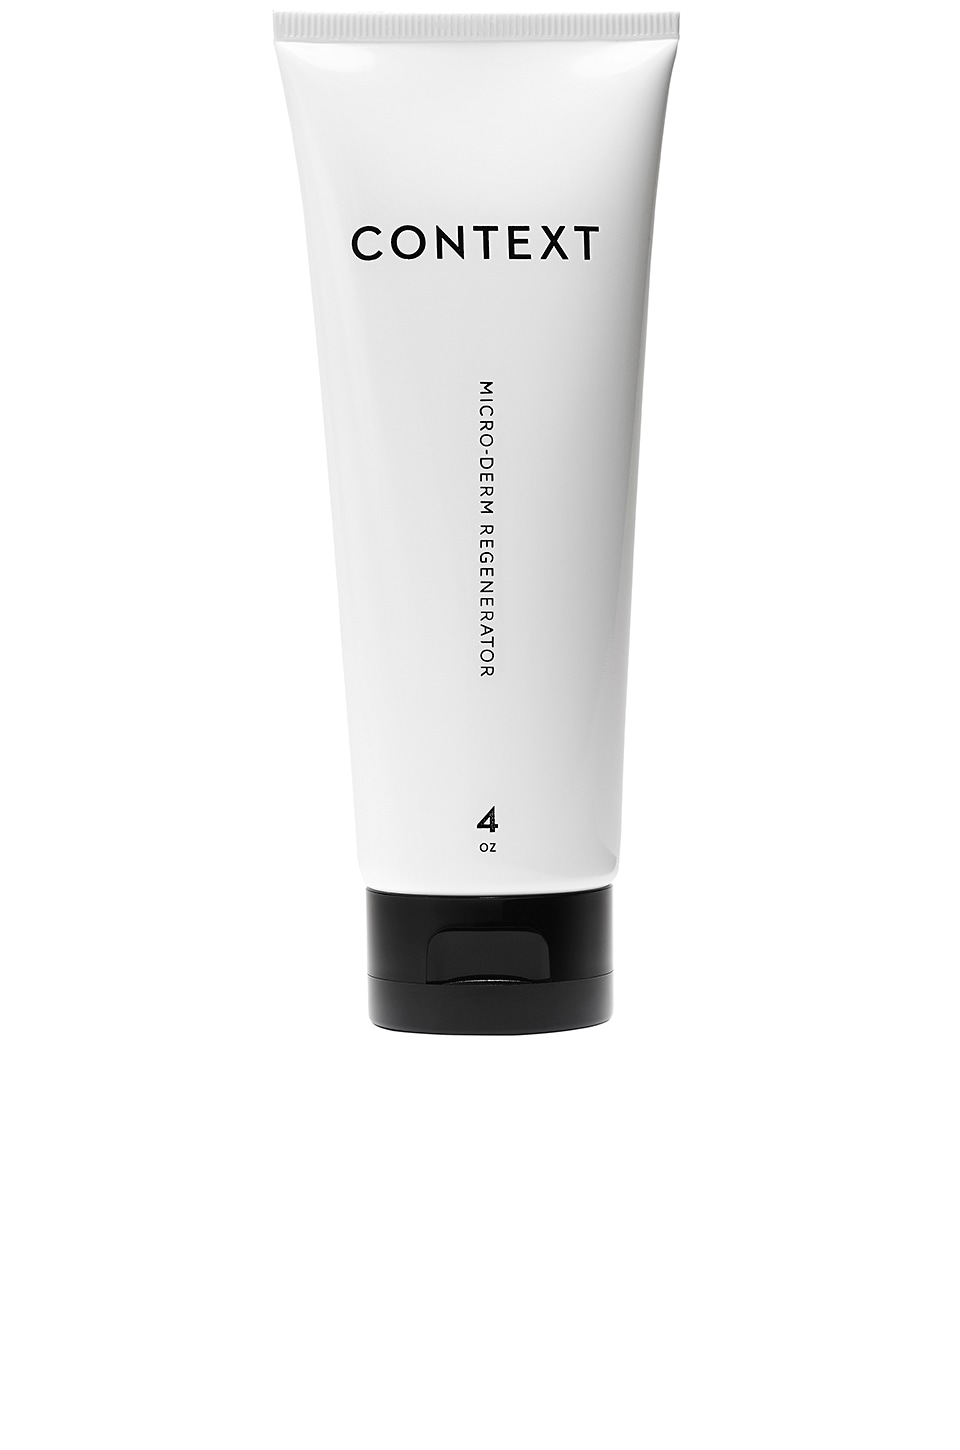 Context Micro-Derm Regenerator in All